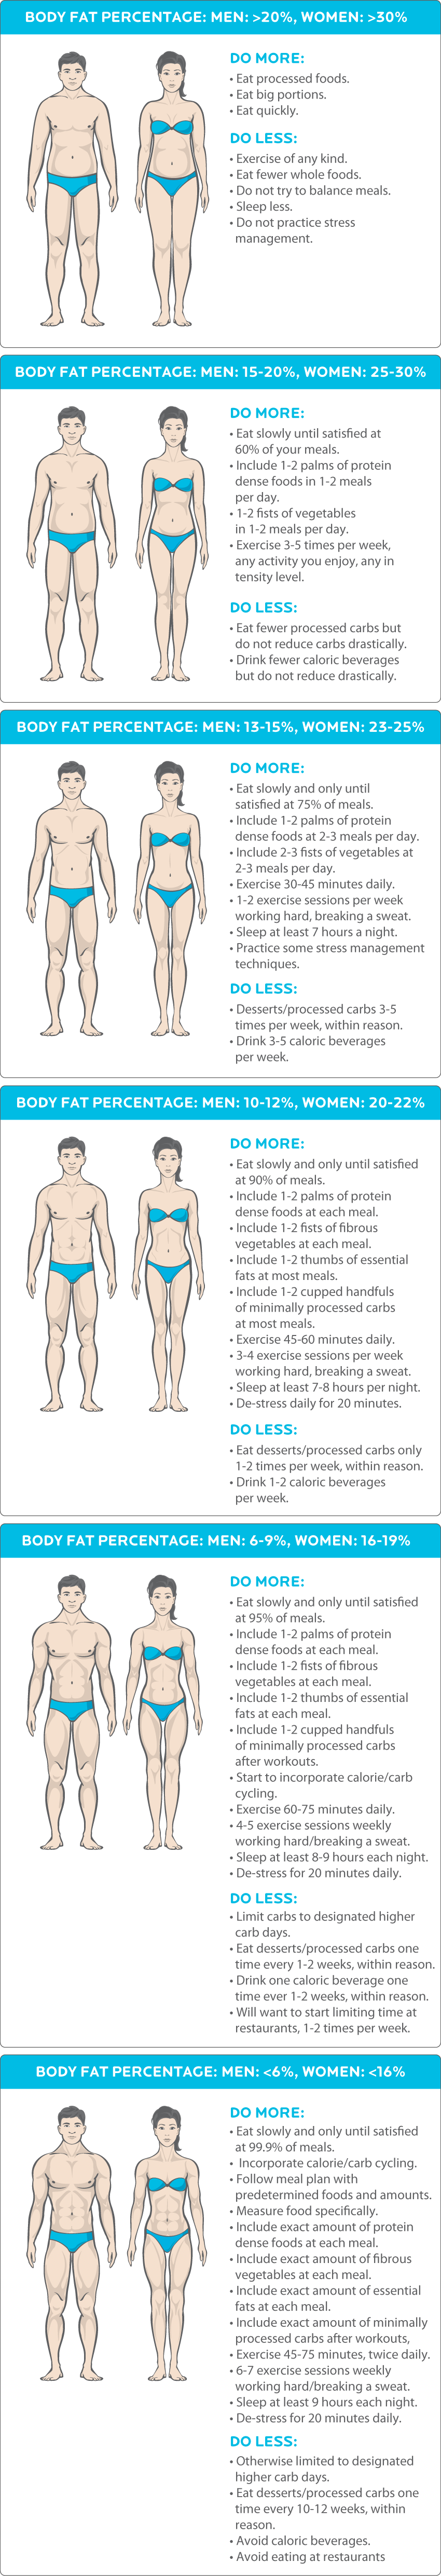 The Cost Of Getting Lean Is It Really Worth The Tradeoff - How much is the human body worth infographic